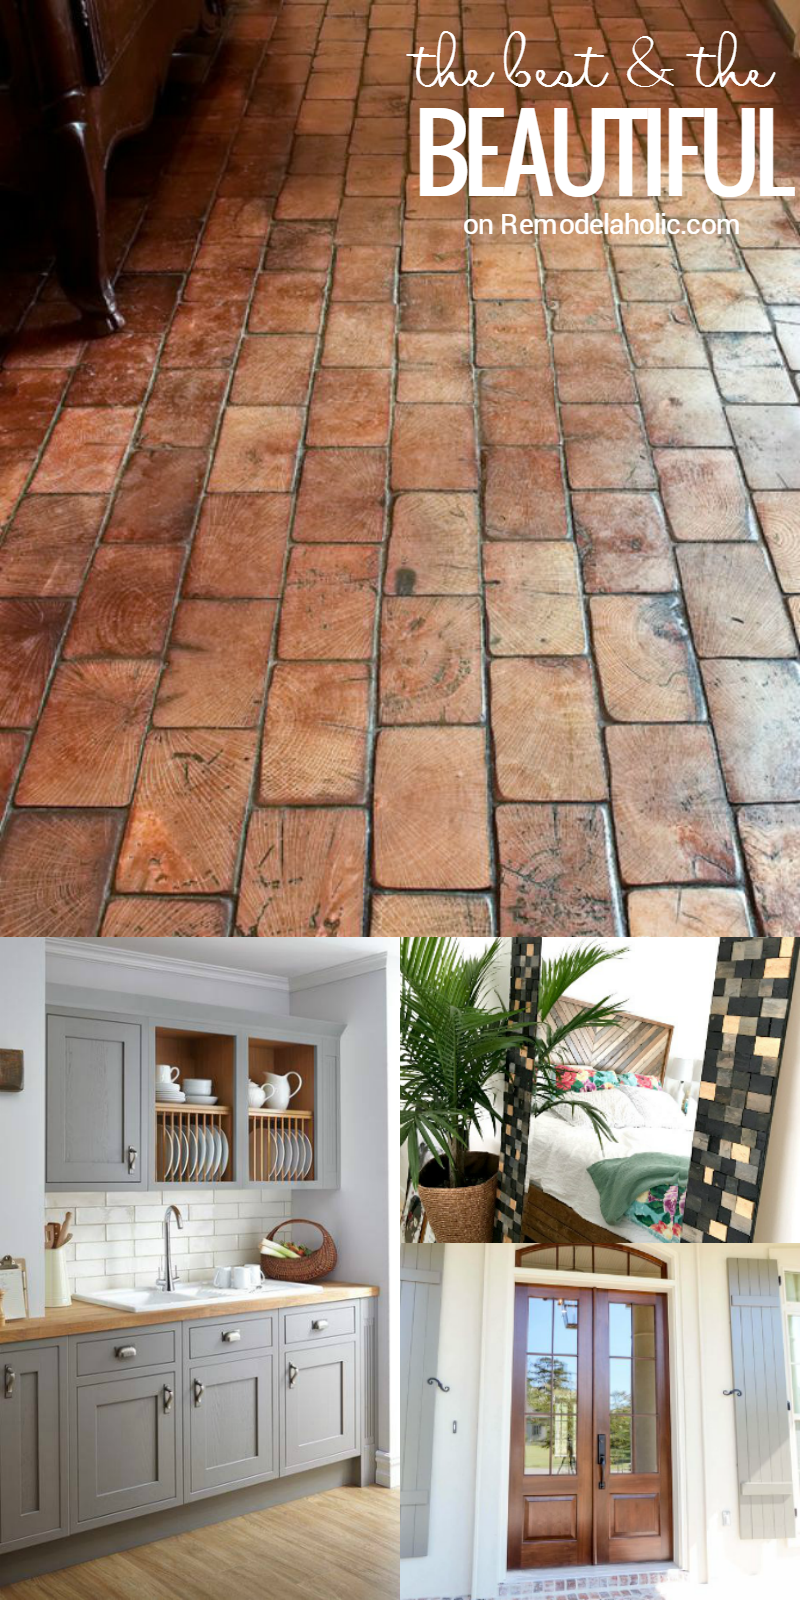 Floors Decor And More 54 Images Floor Outstanding